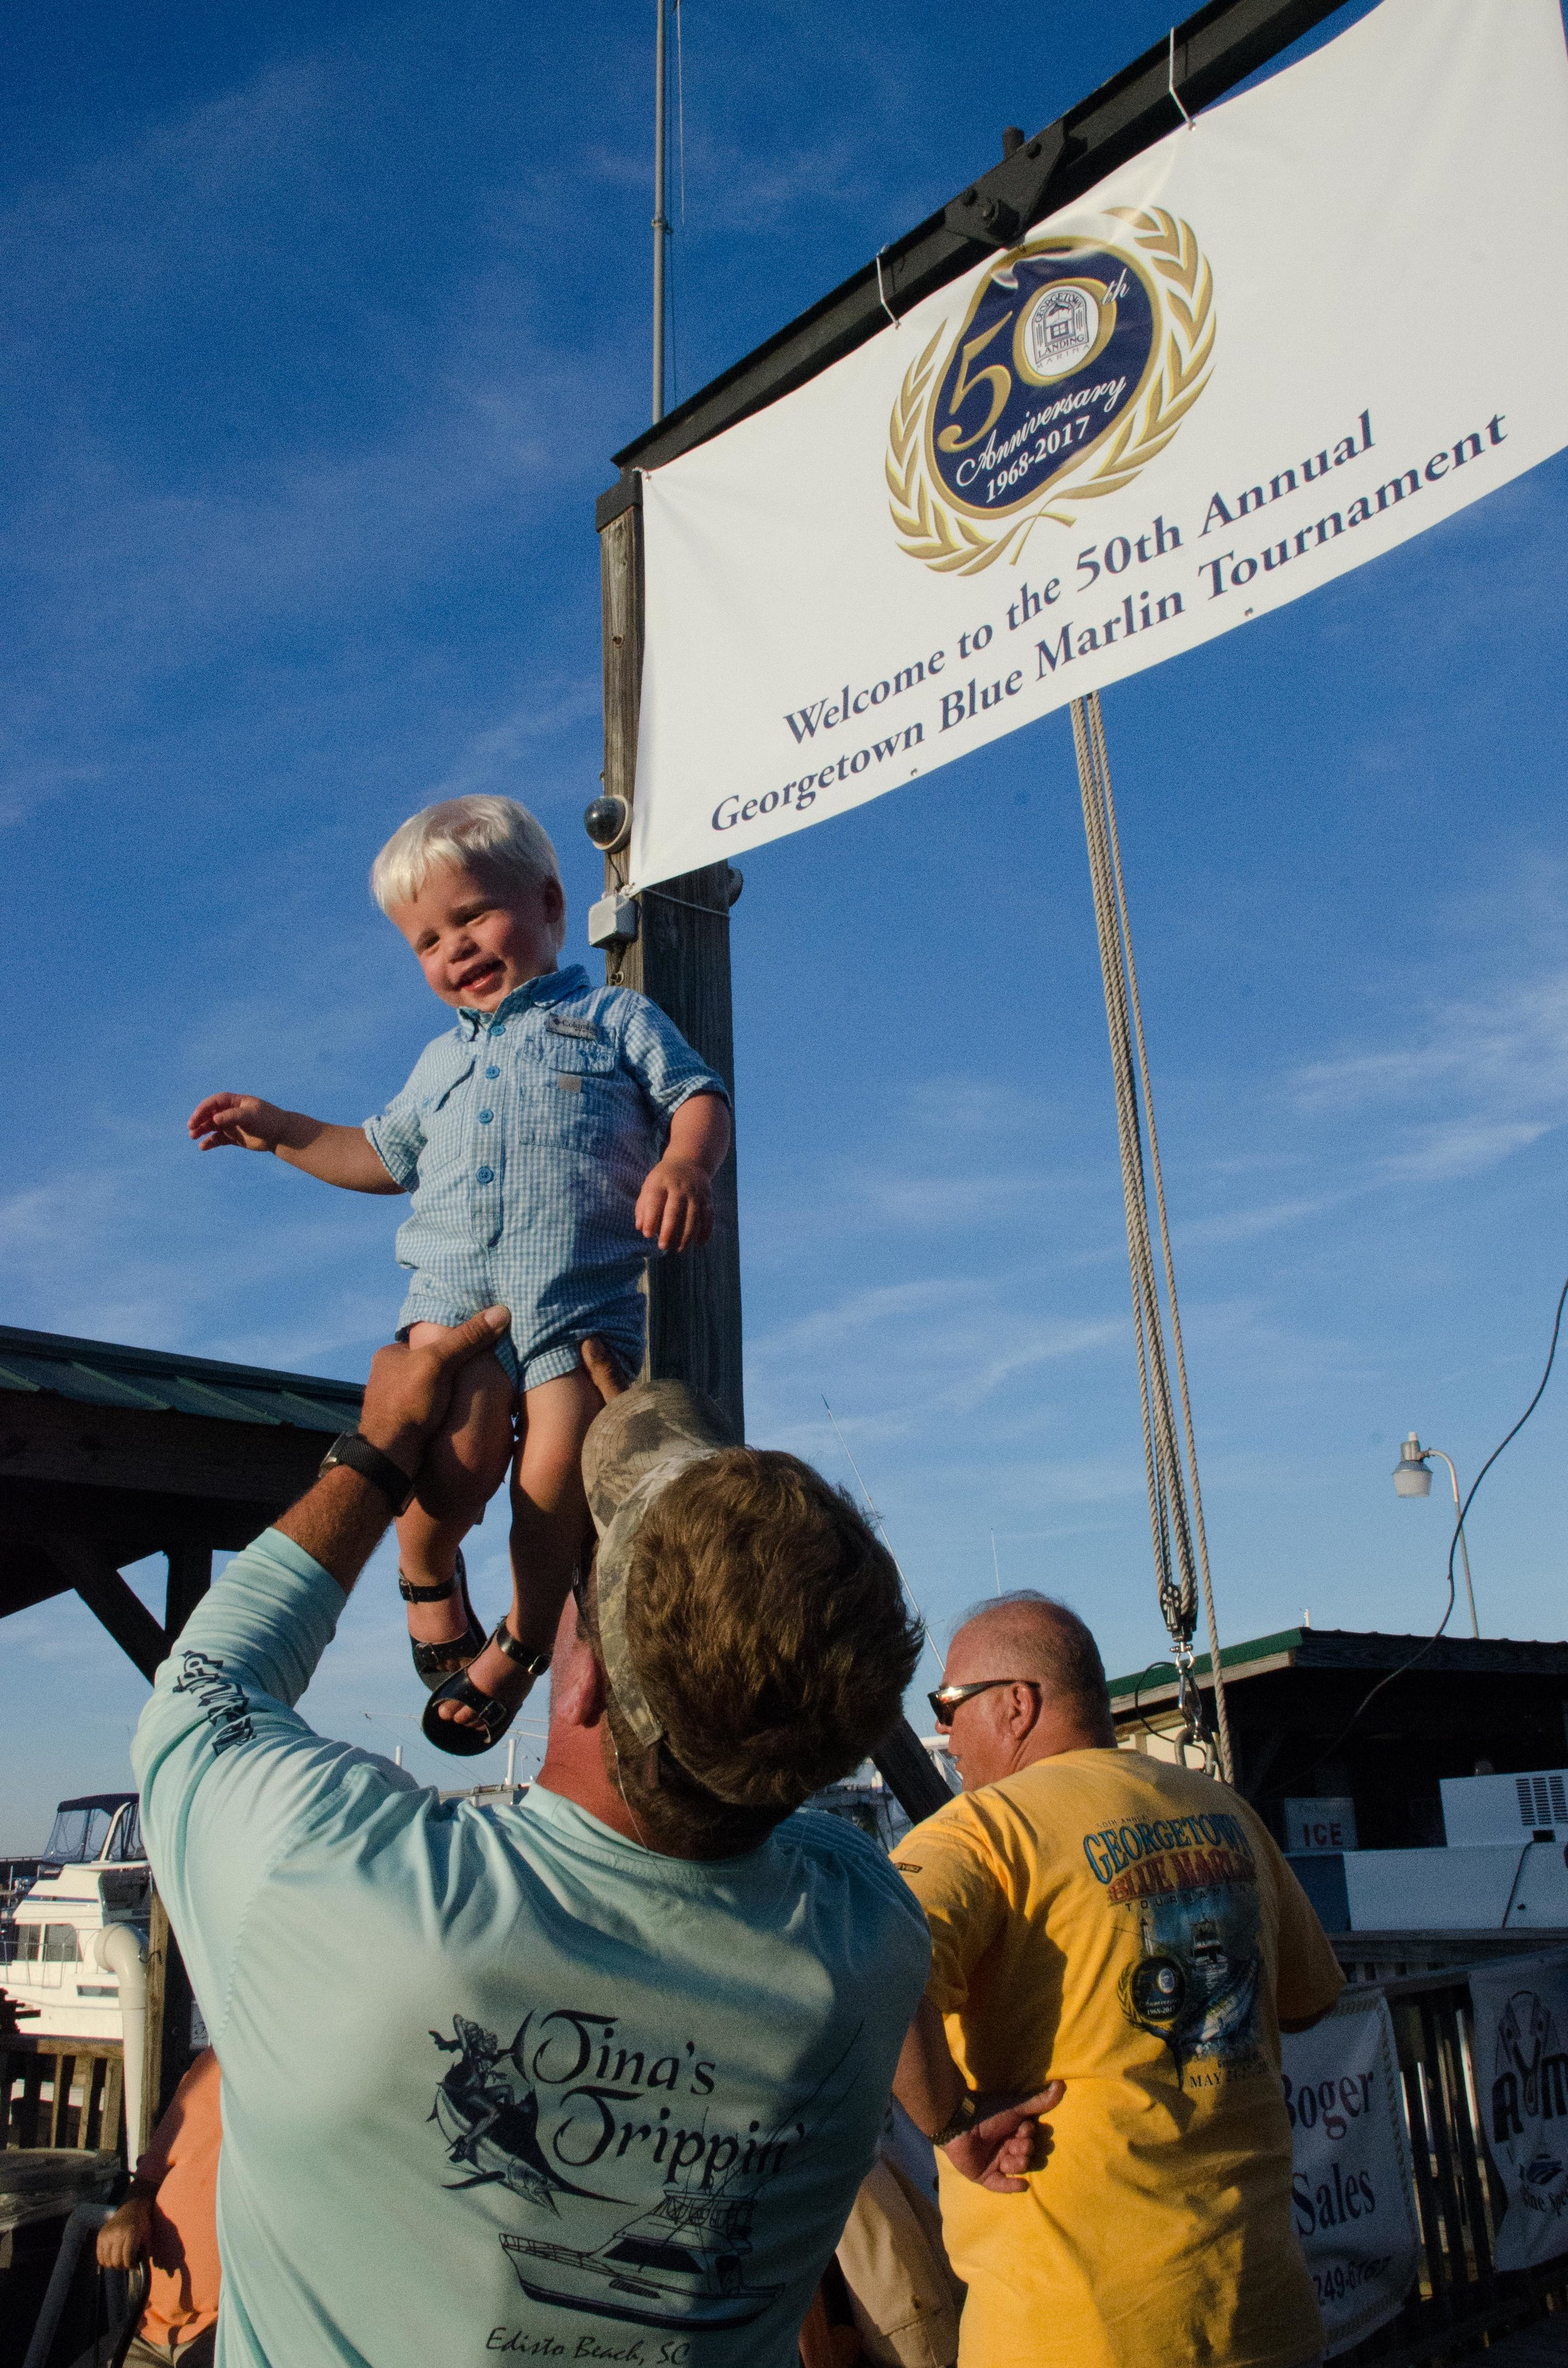 The youngest member of the Tina's Trippin' team celebrates the boat's prize winning dolphin_credit Cameron J. Rhodes.jpg